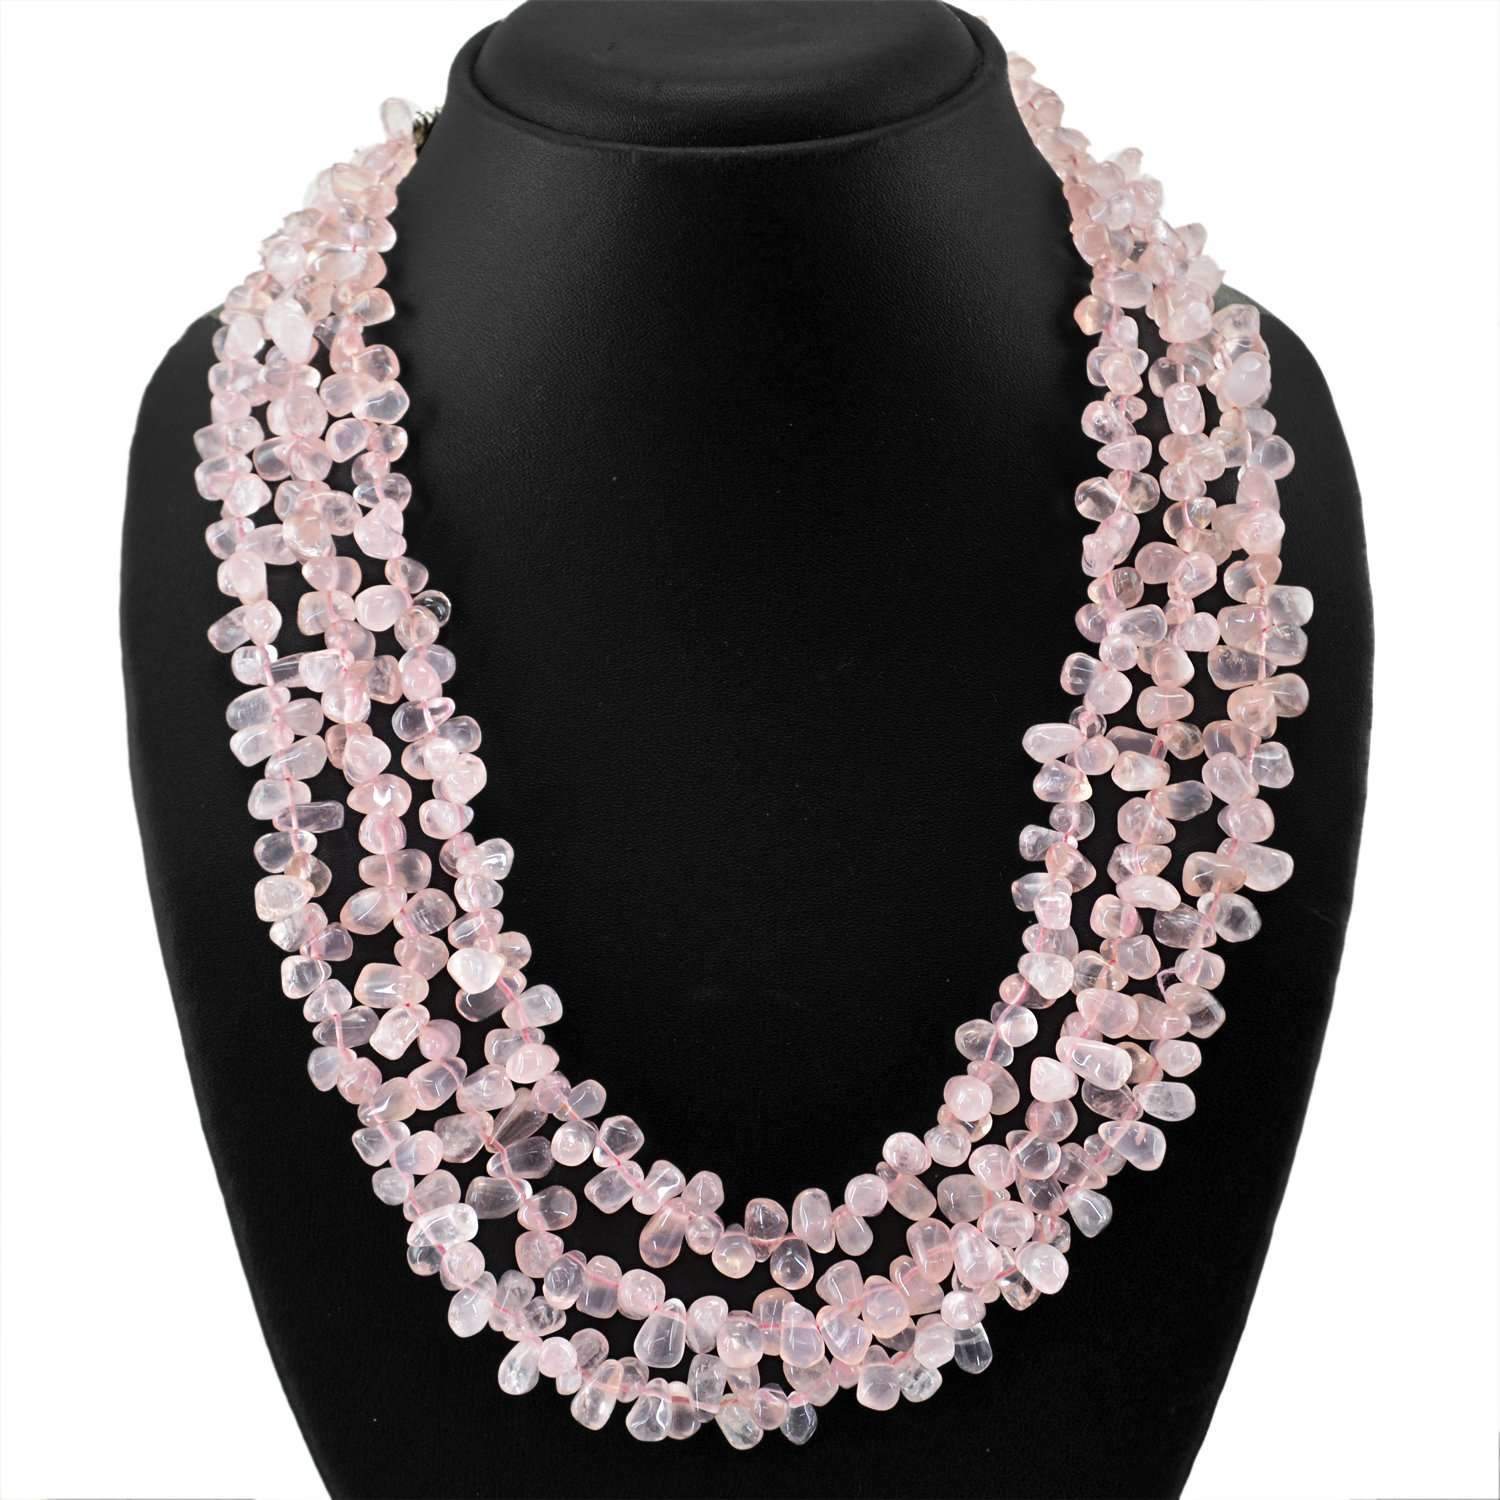 gemsmore:Pink Rose Quartz Necklace 3 Lines Natural Tear Drop Beads